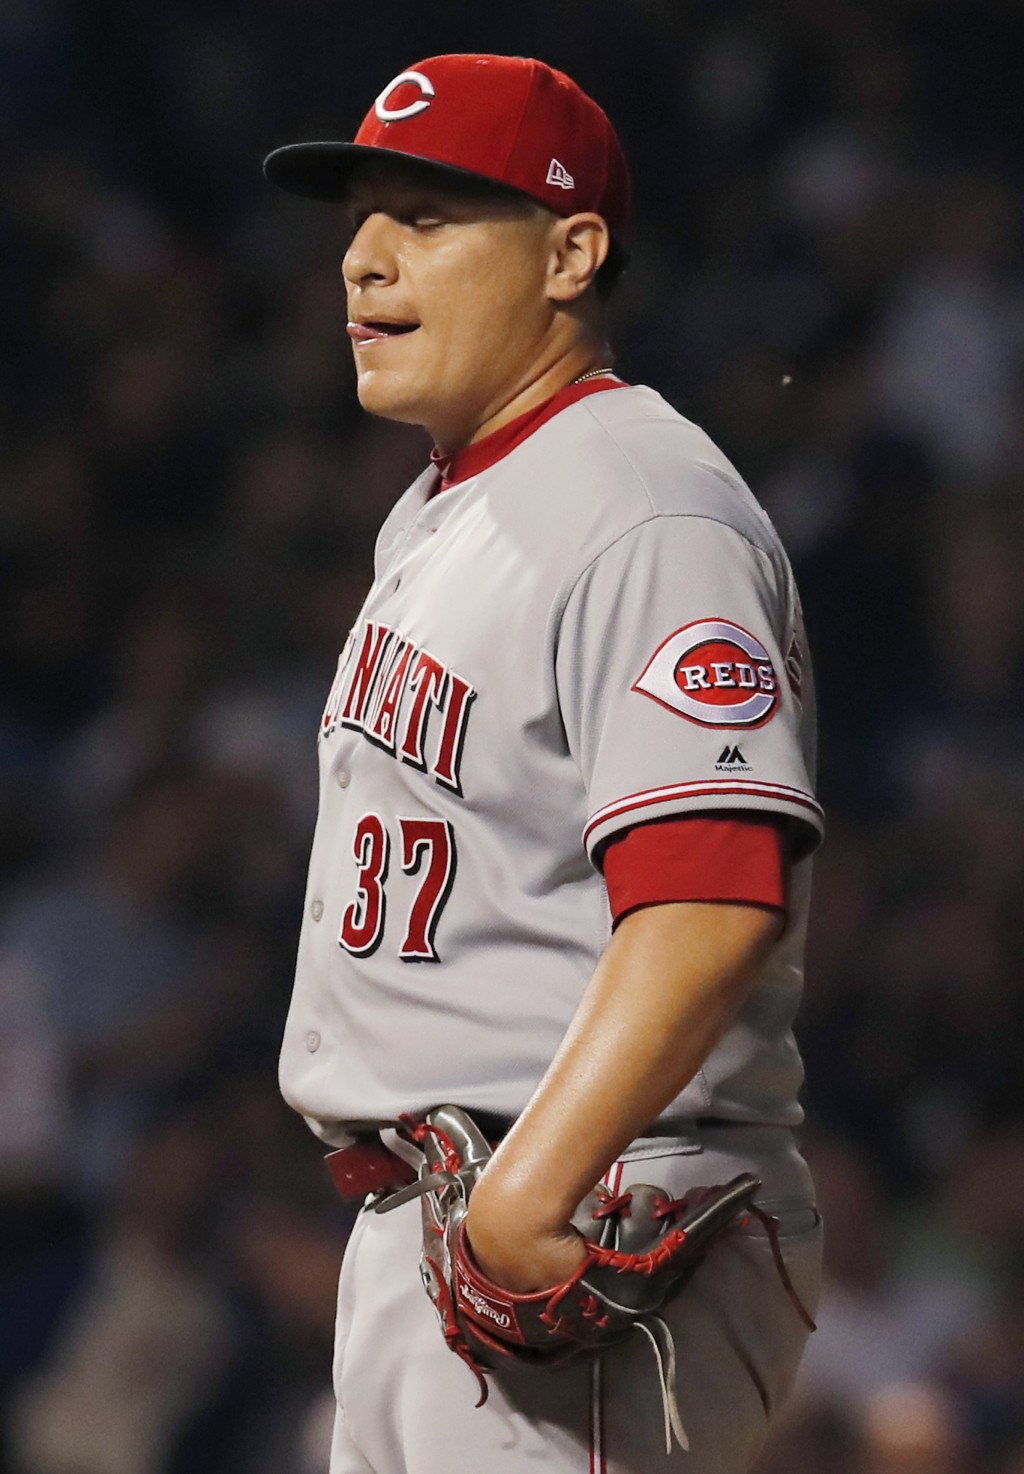 Cincinnati Reds' David Hernandez reacts after giving up a a three-run home run to Chicago Cubs' Ian Happ during the seventh inning of a baseball game